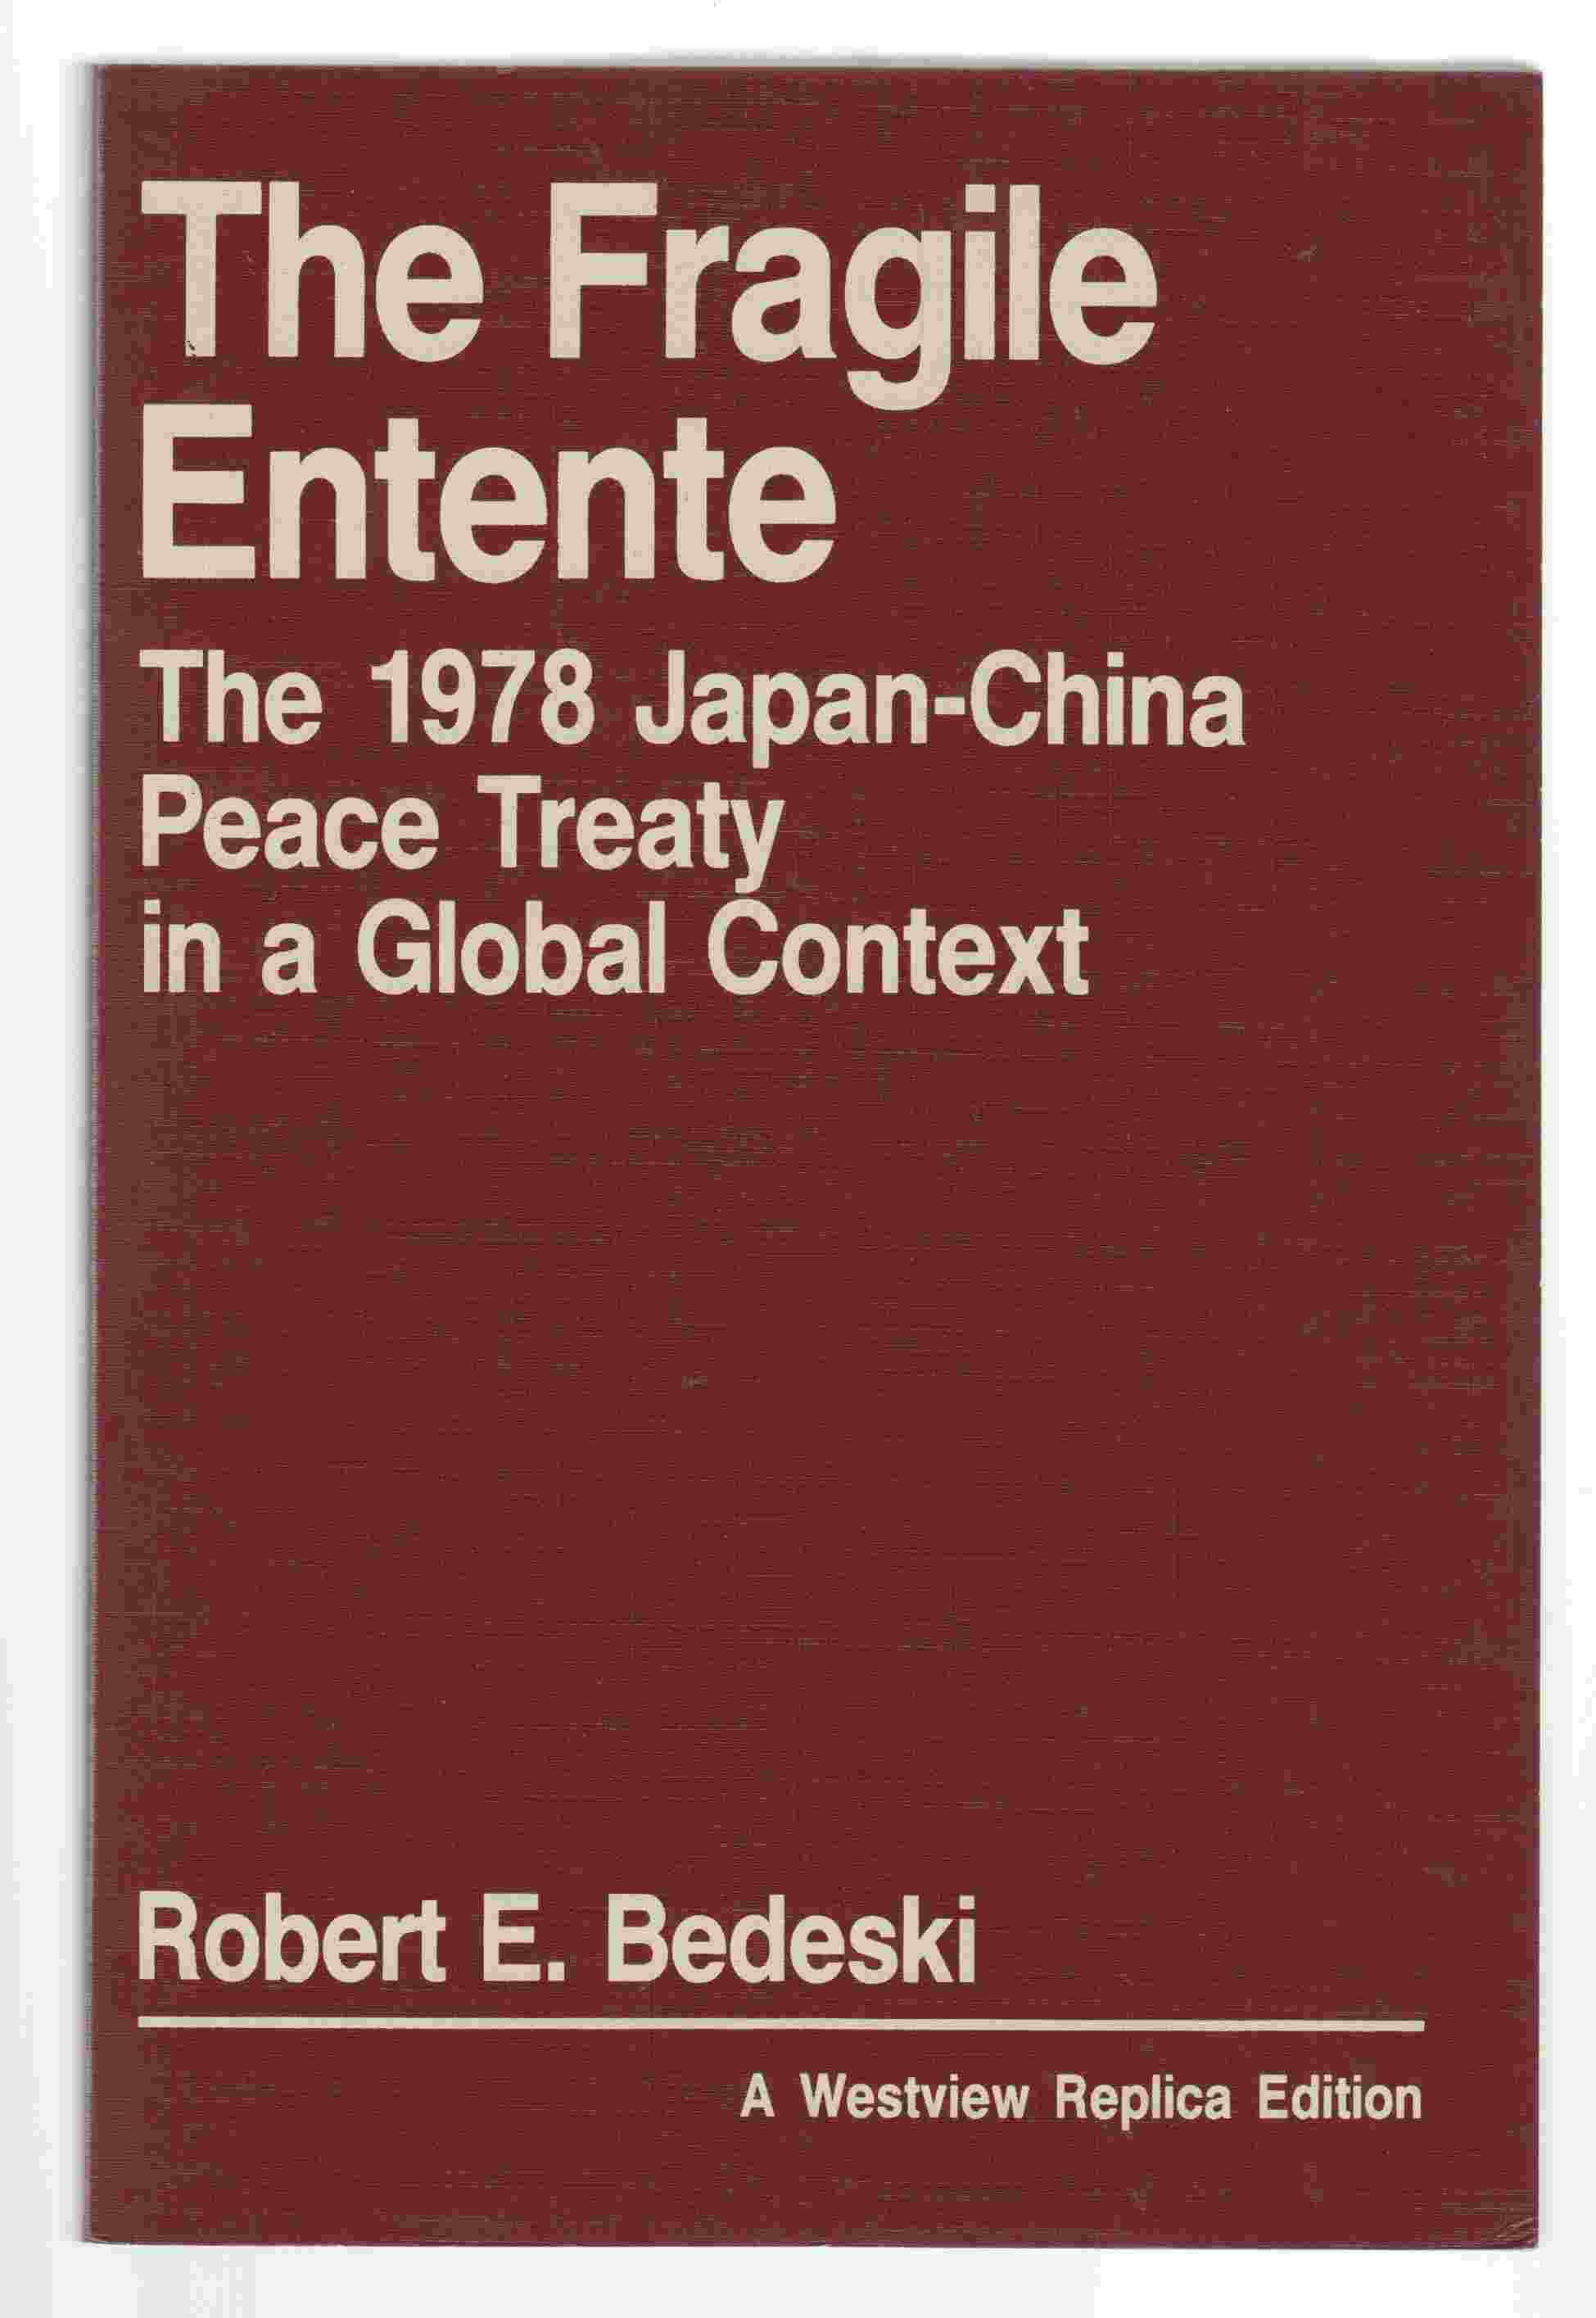 Image for The Fragile Entente The 1978 Japan-China Peace Treaty in a Global Context